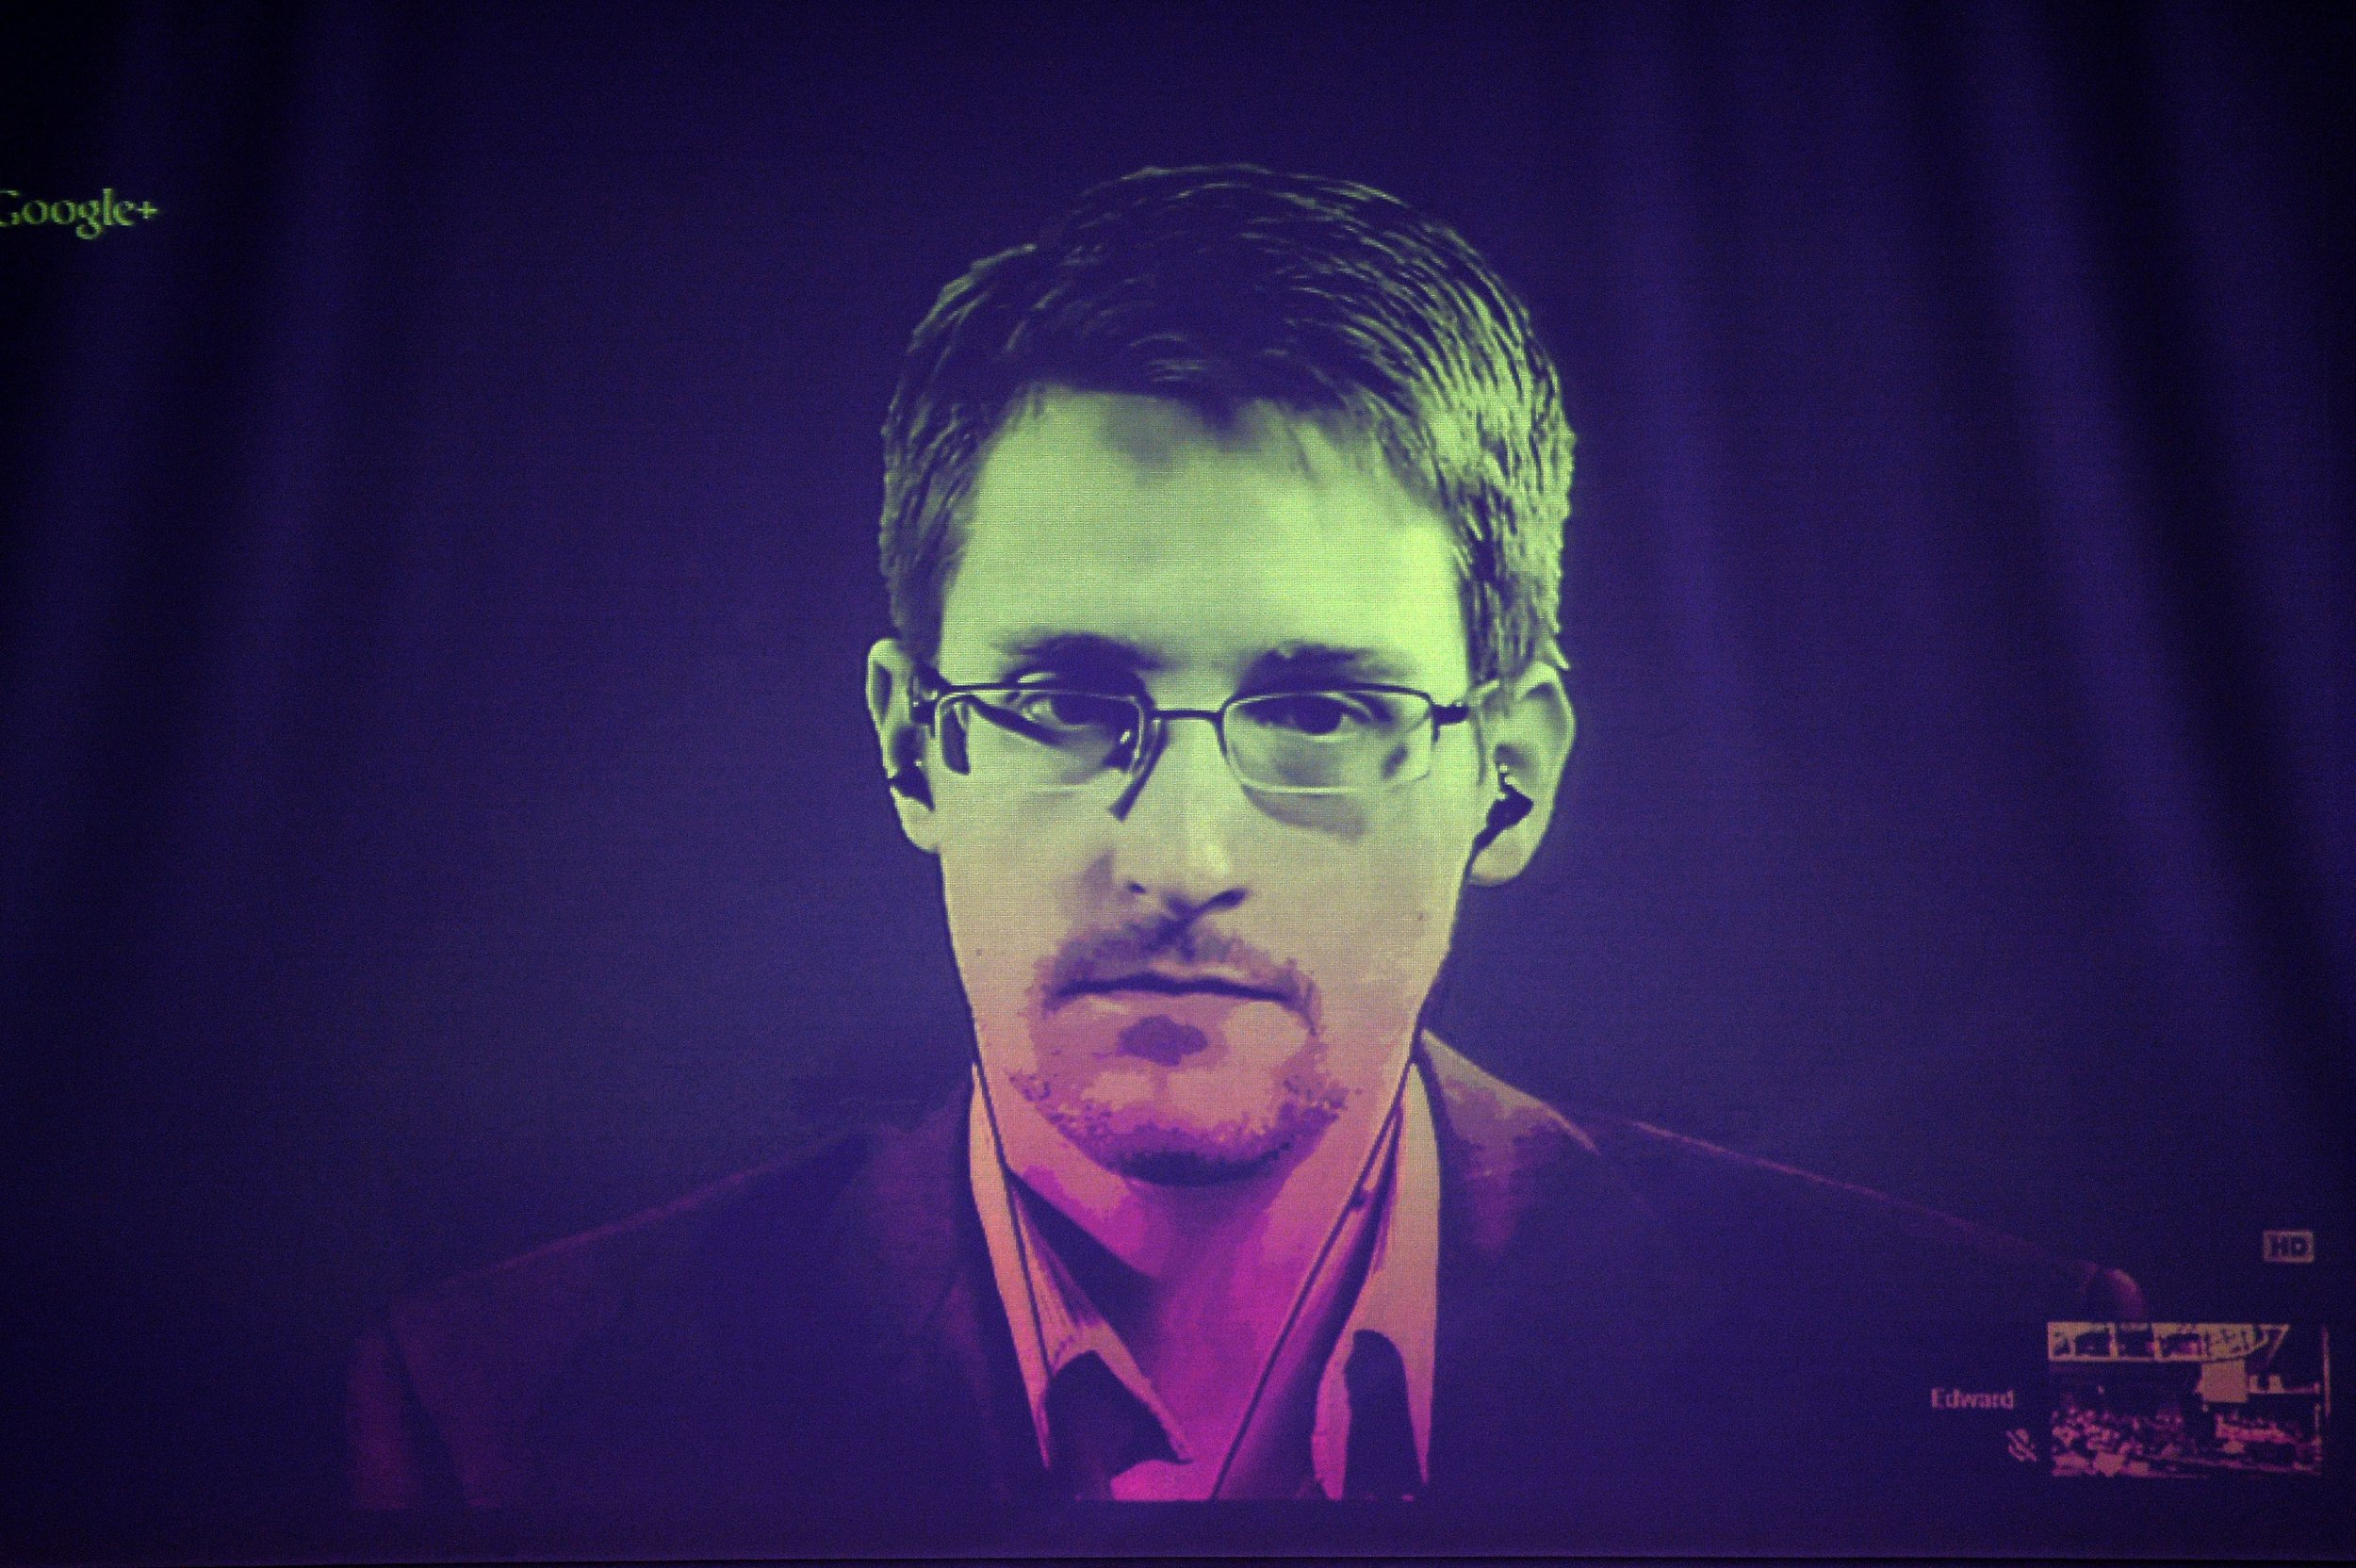 edward snowden encryption james clapper